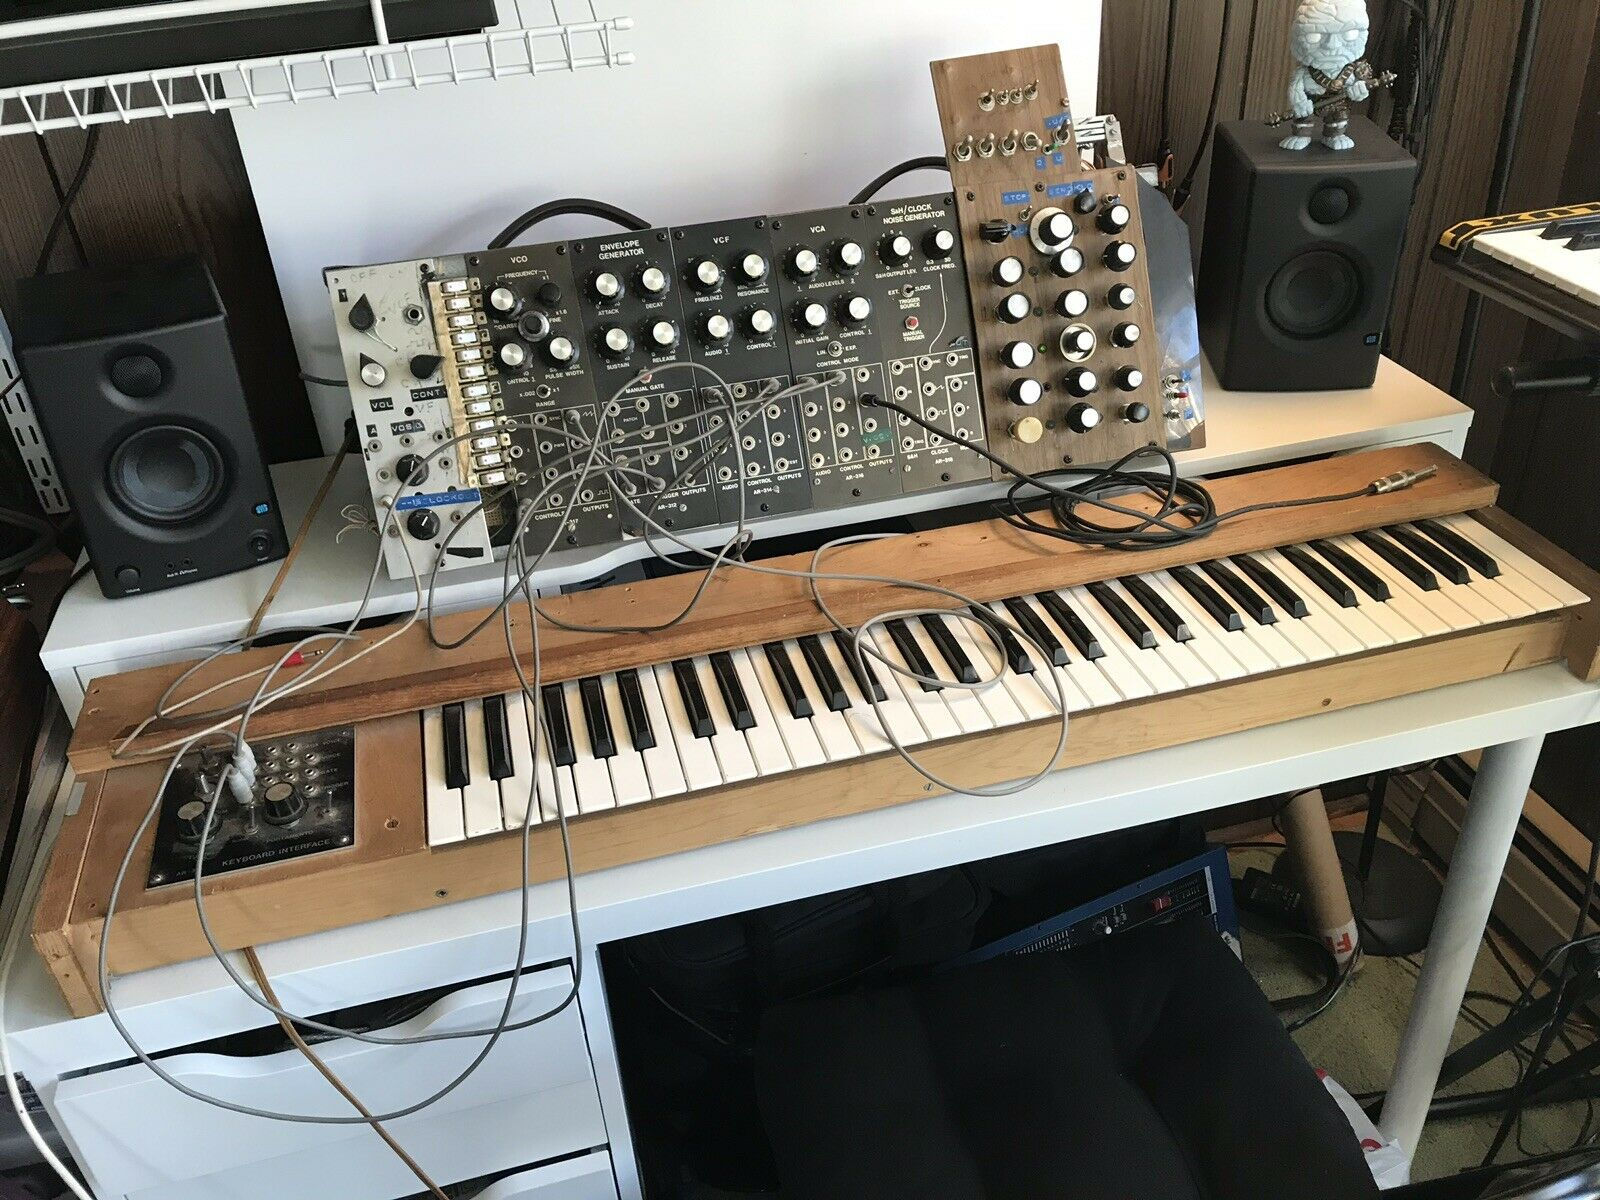 matrixsynth vintage aries 300 series modular synthesizer with 61 key control keyboard. Black Bedroom Furniture Sets. Home Design Ideas